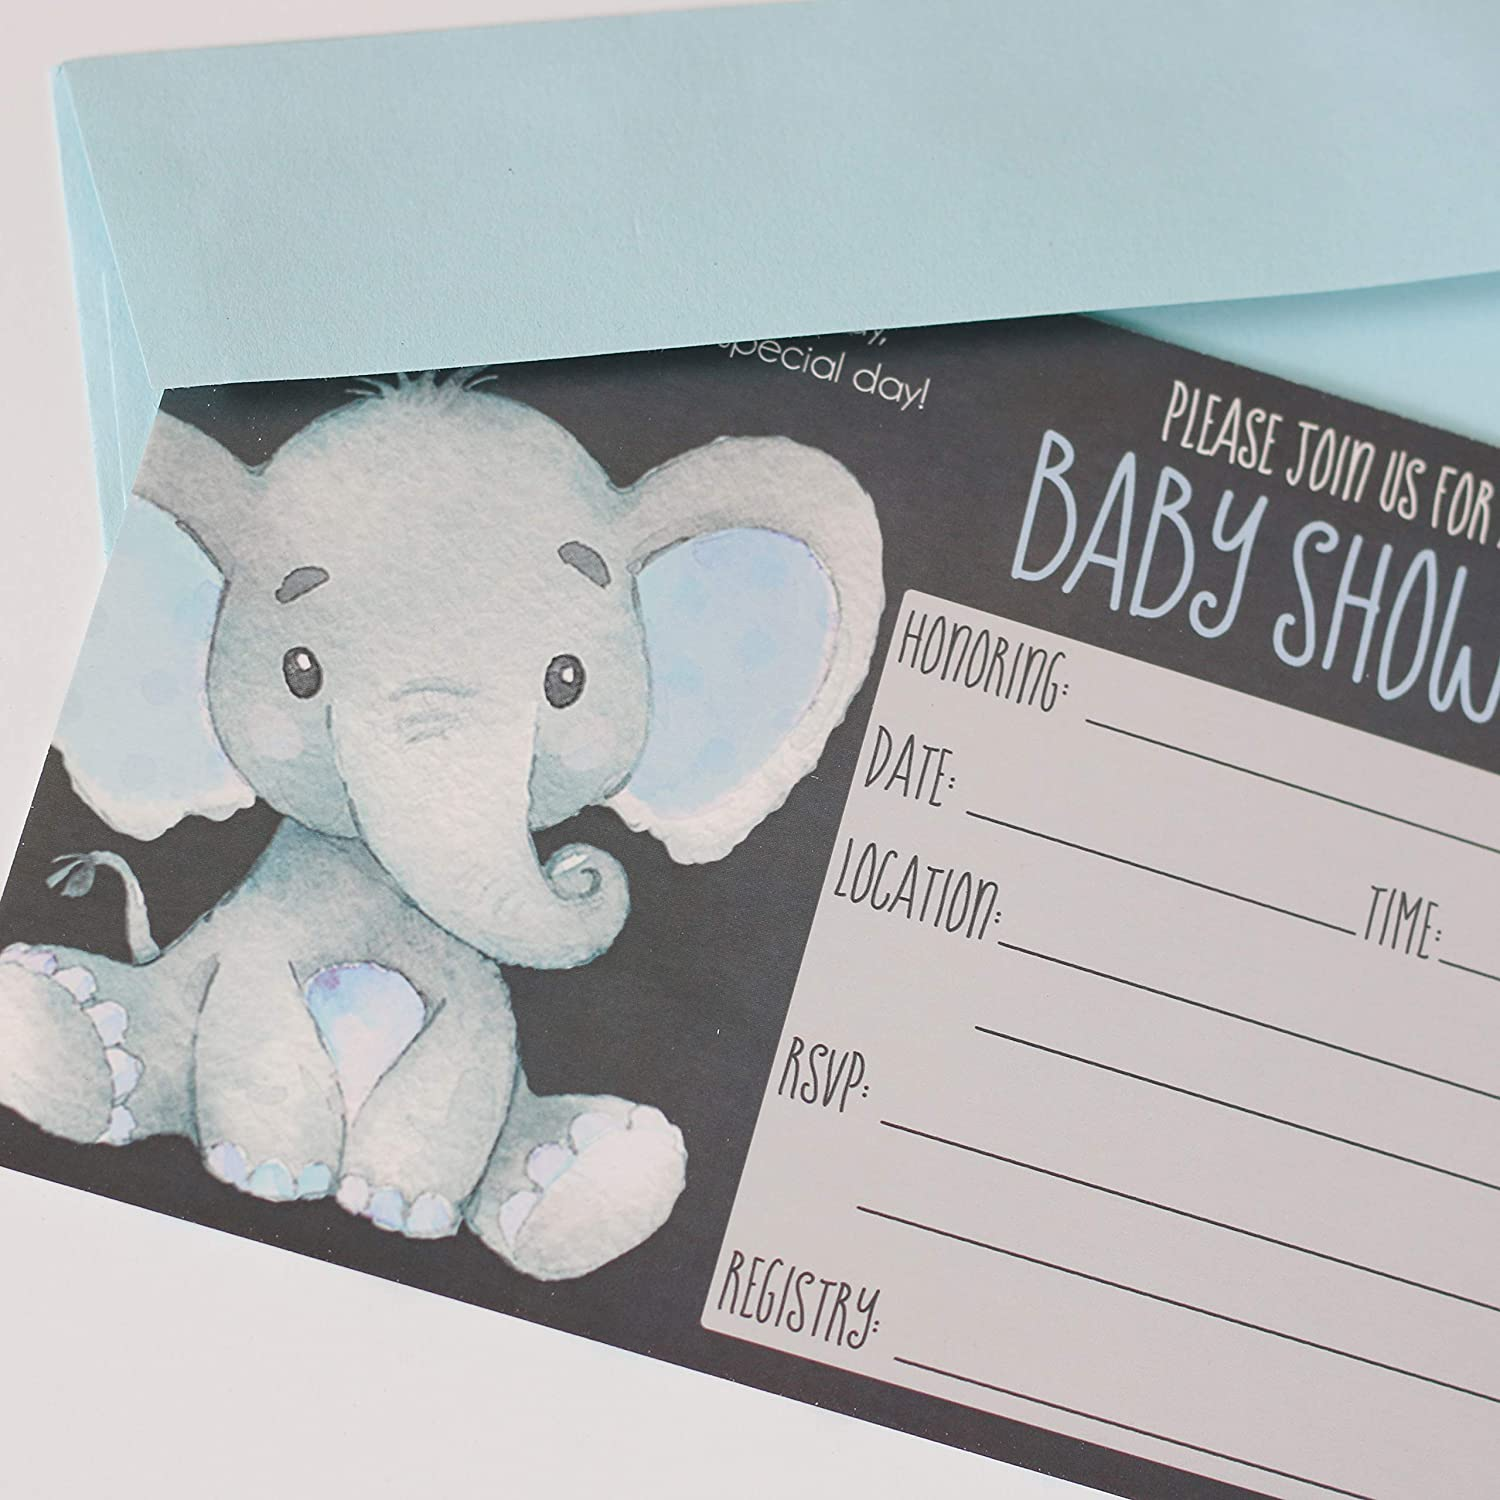 20 Ct Blue Includes White A7 Envelopes 5x7 Cards with Chalkboard Background Party Printery Elephant Baby Shower Invitations Boy Boy Baby Shower Fill in Style and Blue and Grey Polka Dot Background